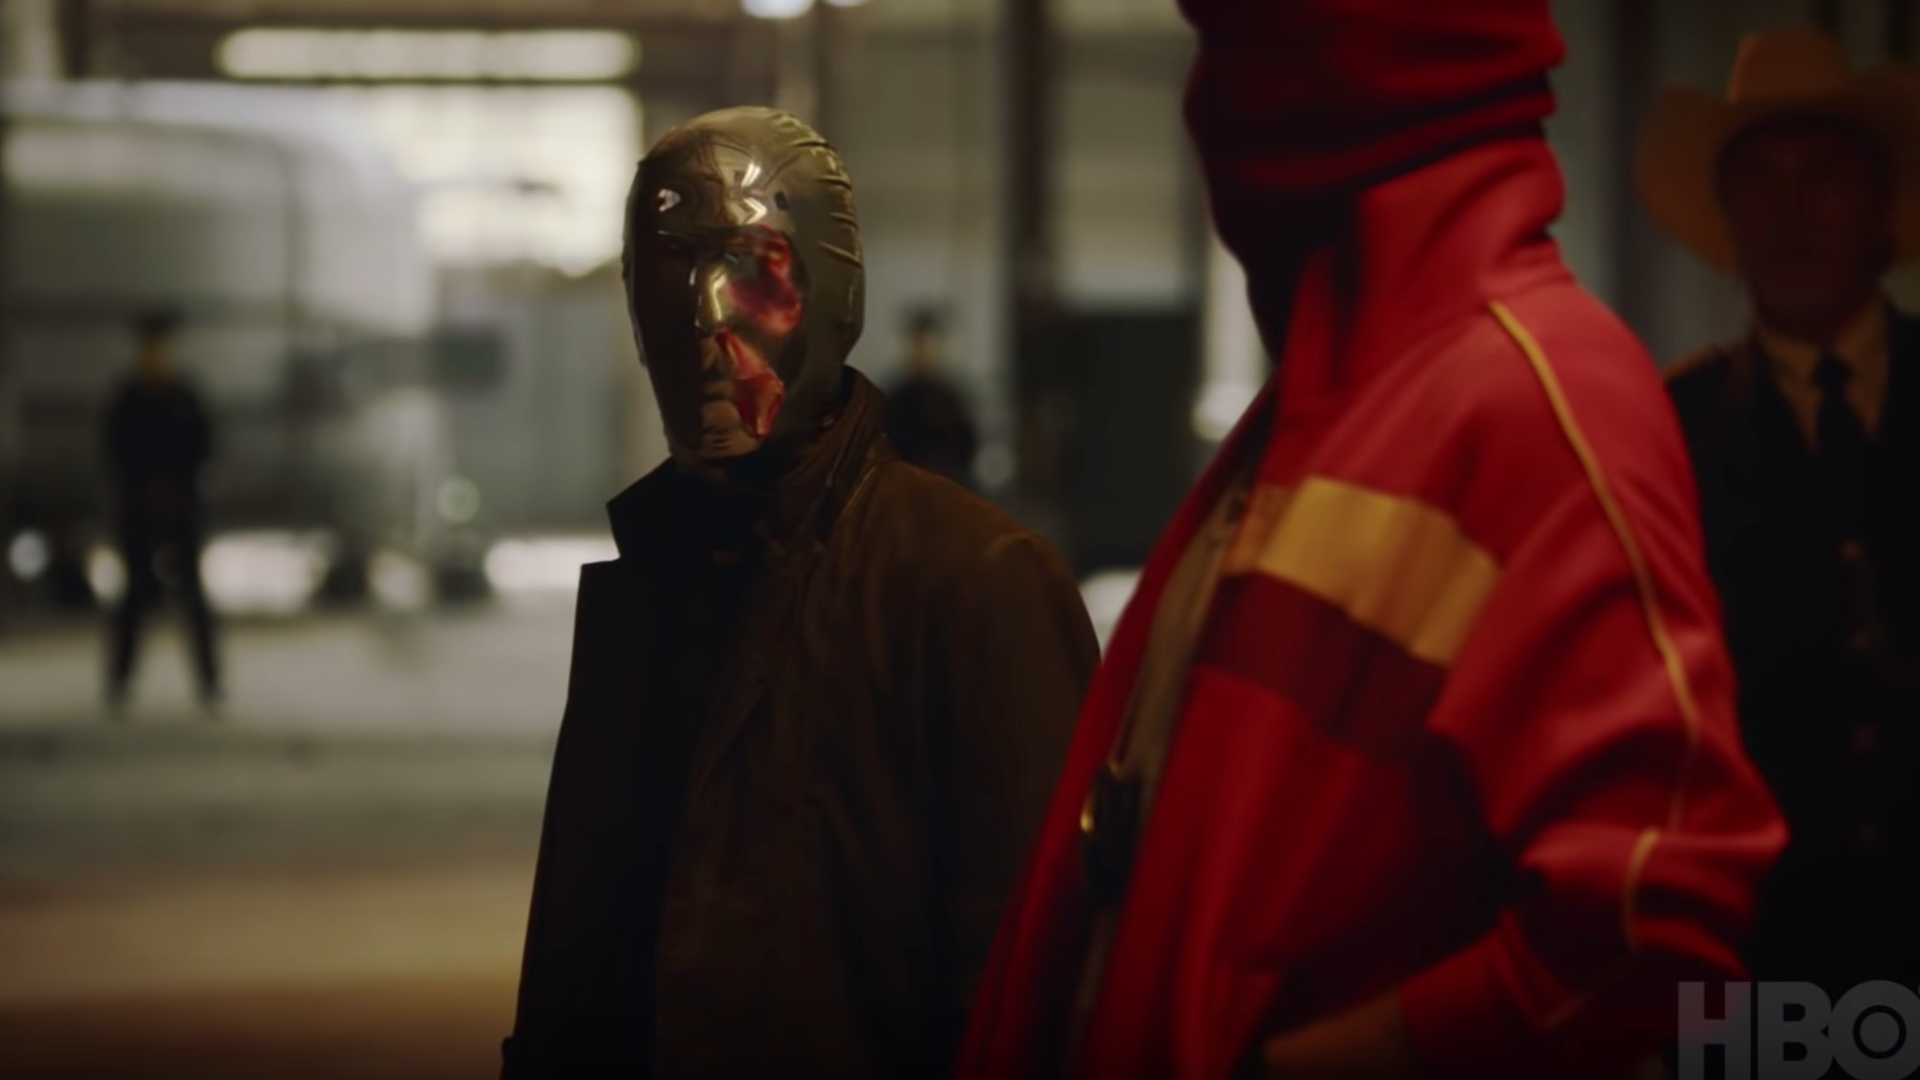 new-footage-of-watchmen-and-deadwood-featured-in-hbo-promo-video-social.jpg